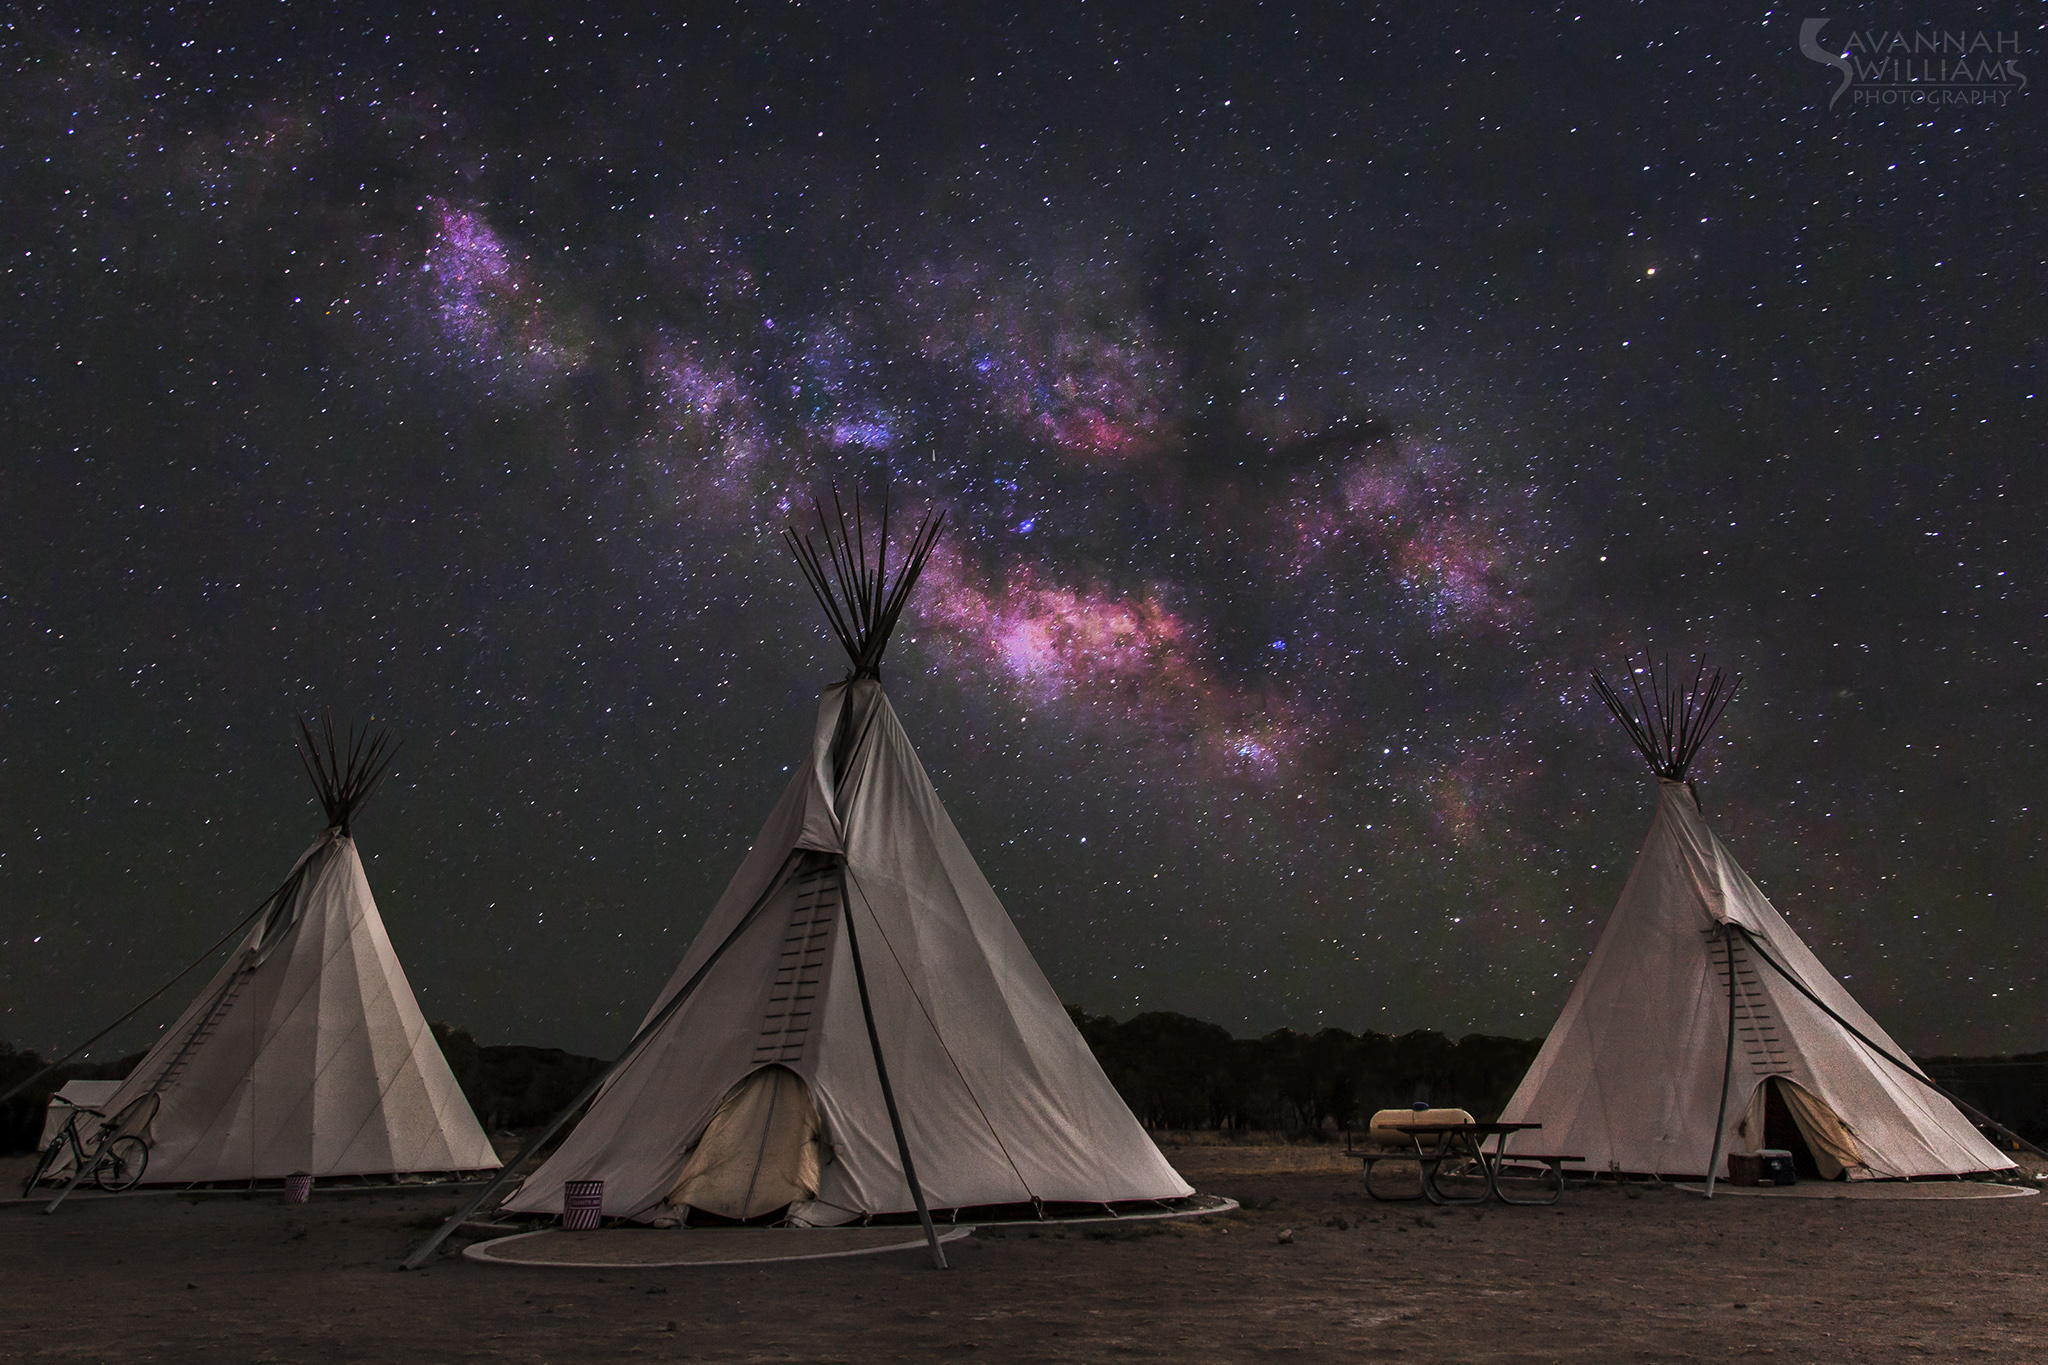 Tents Camping At A Starry Night In The Desert 2048x1365